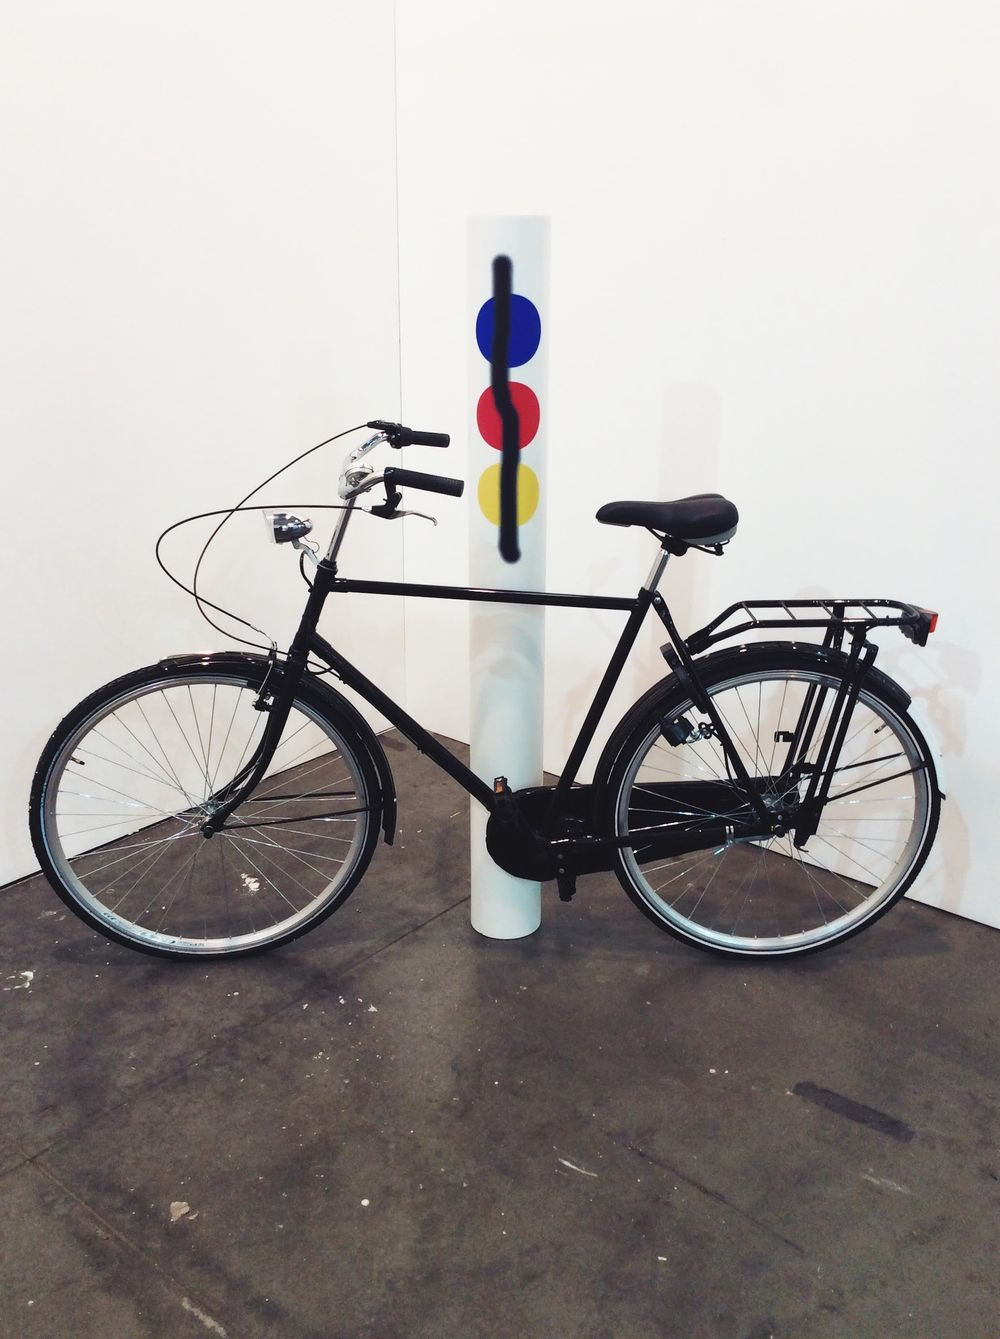 Mathieu Mercier, Untitled (Bike/primary aerosol), 2012